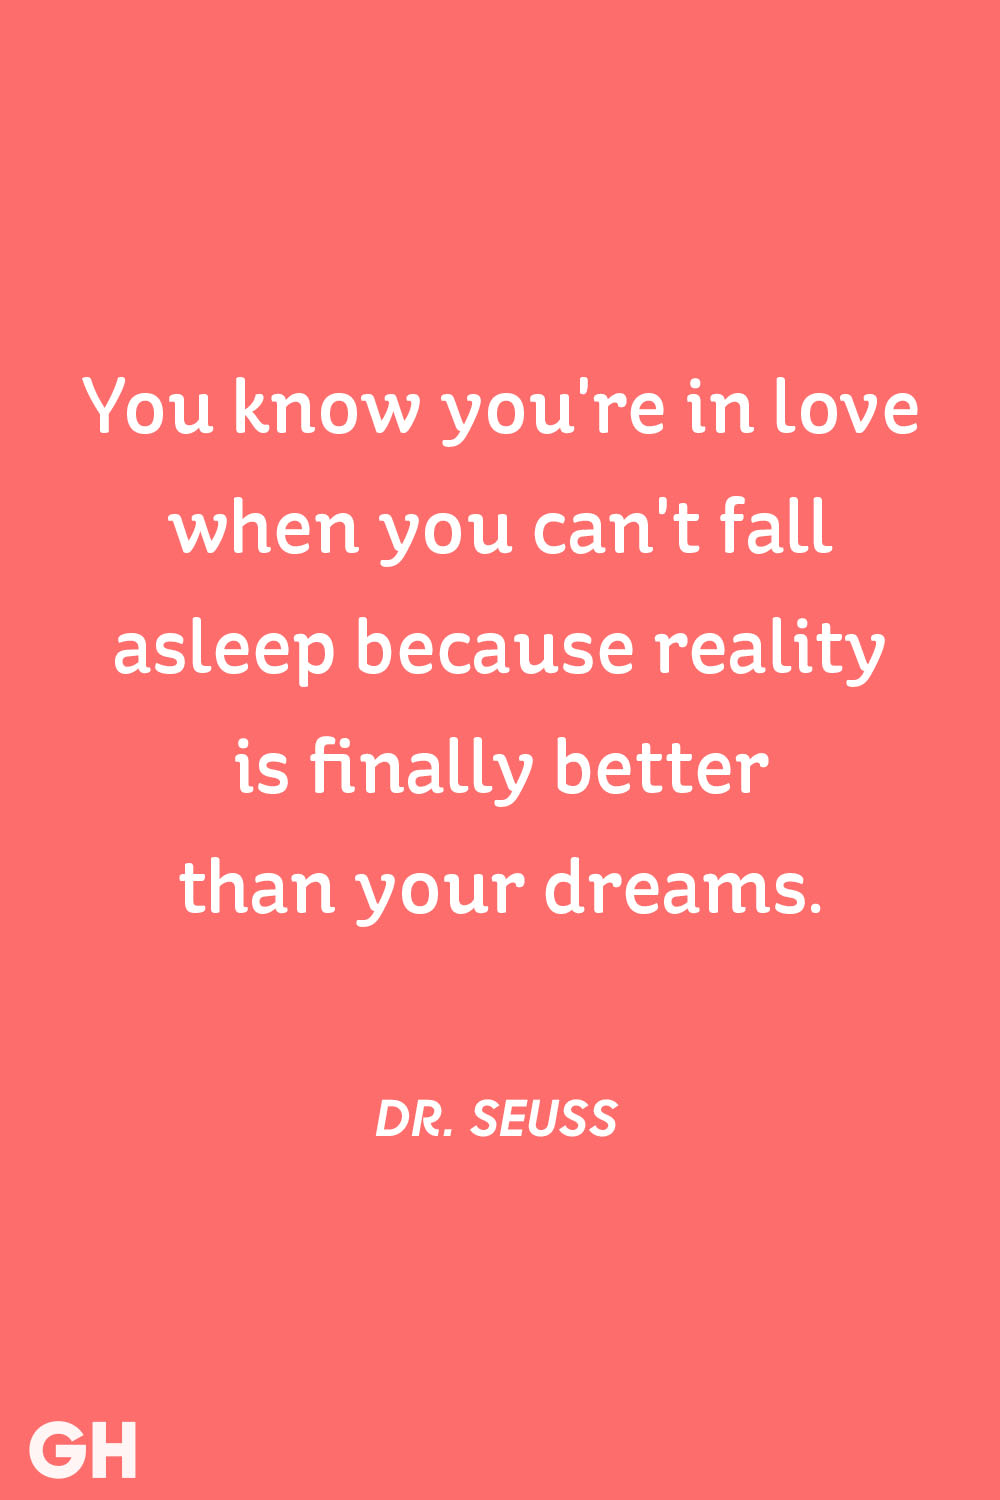 Dr Seuss Love Quotes 30 Cute Valentine's Day Quotes  Best Romantic Quotes About